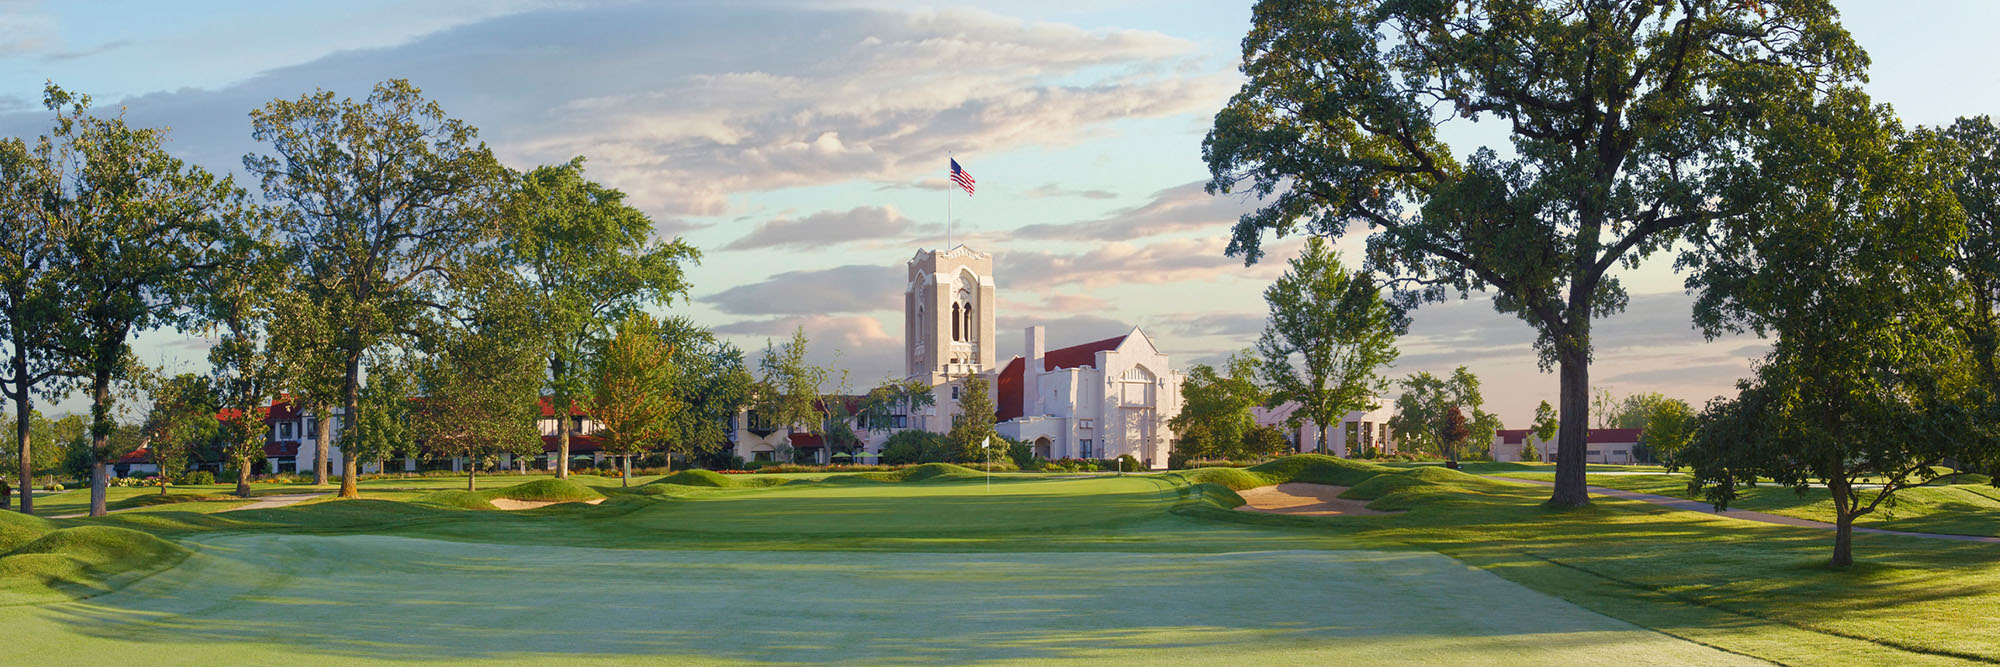 Golf Course Image - Olympia Fields South No. 18